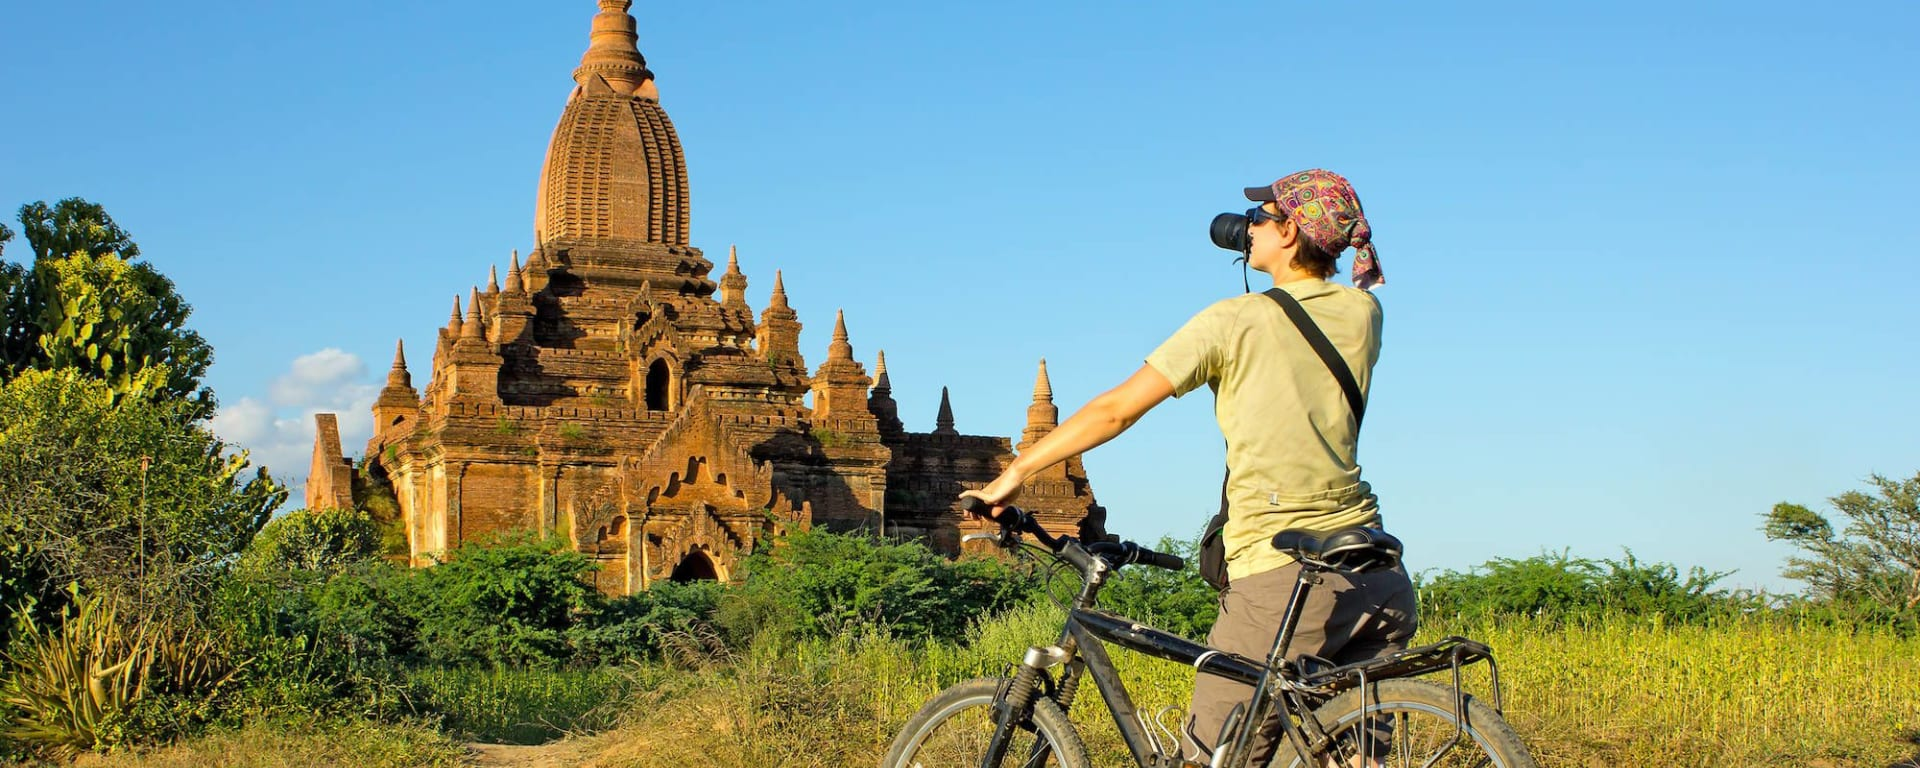 Myanmar aktiv erleben ab Yangon: Bagan: touring with bycycle